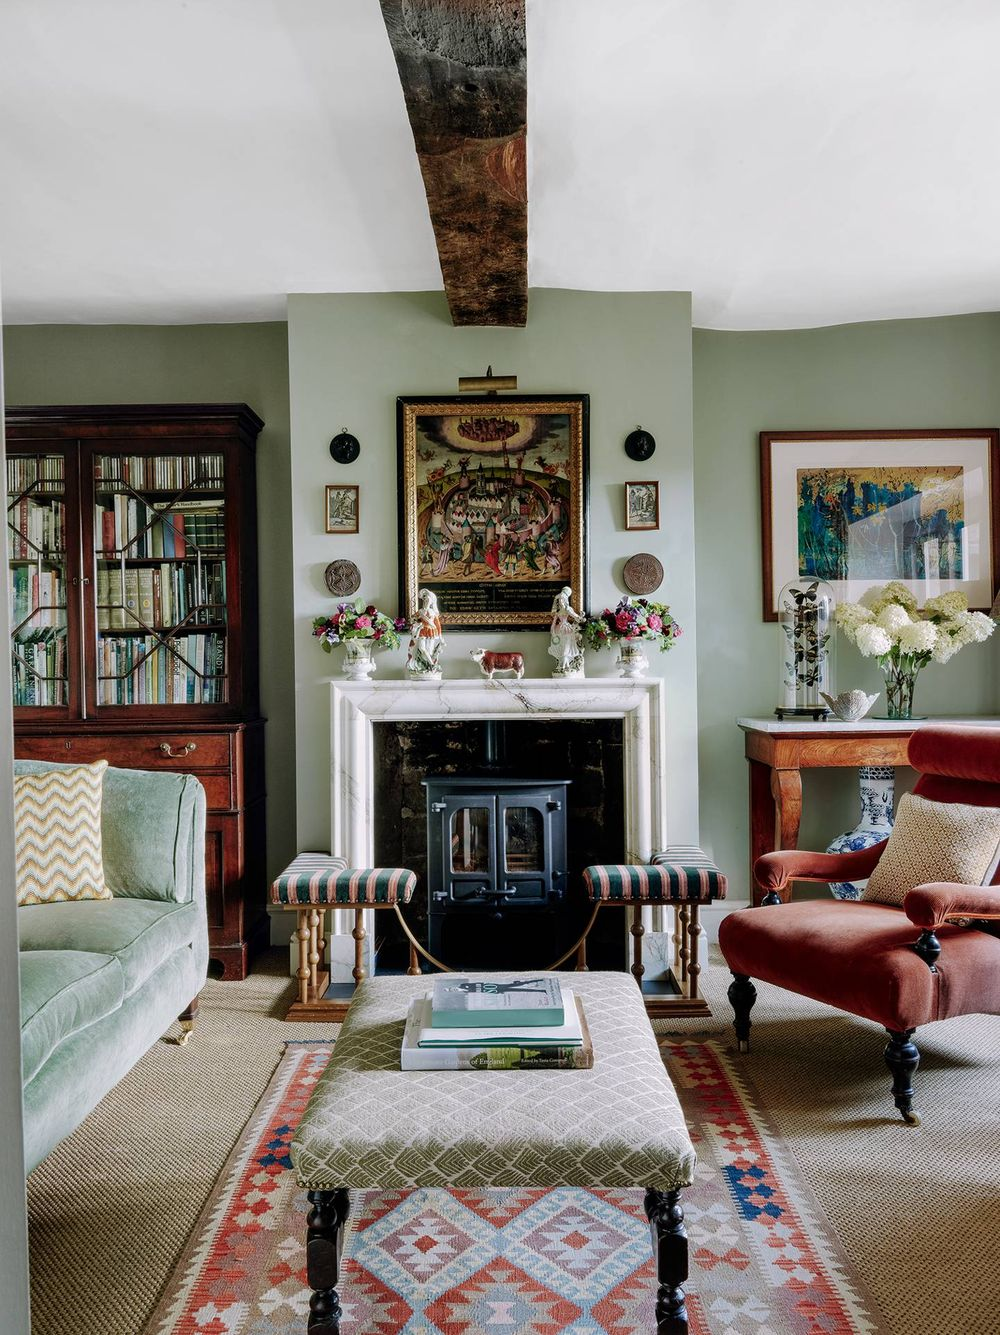 10 Fantastic English Country Living Rooms You Must See